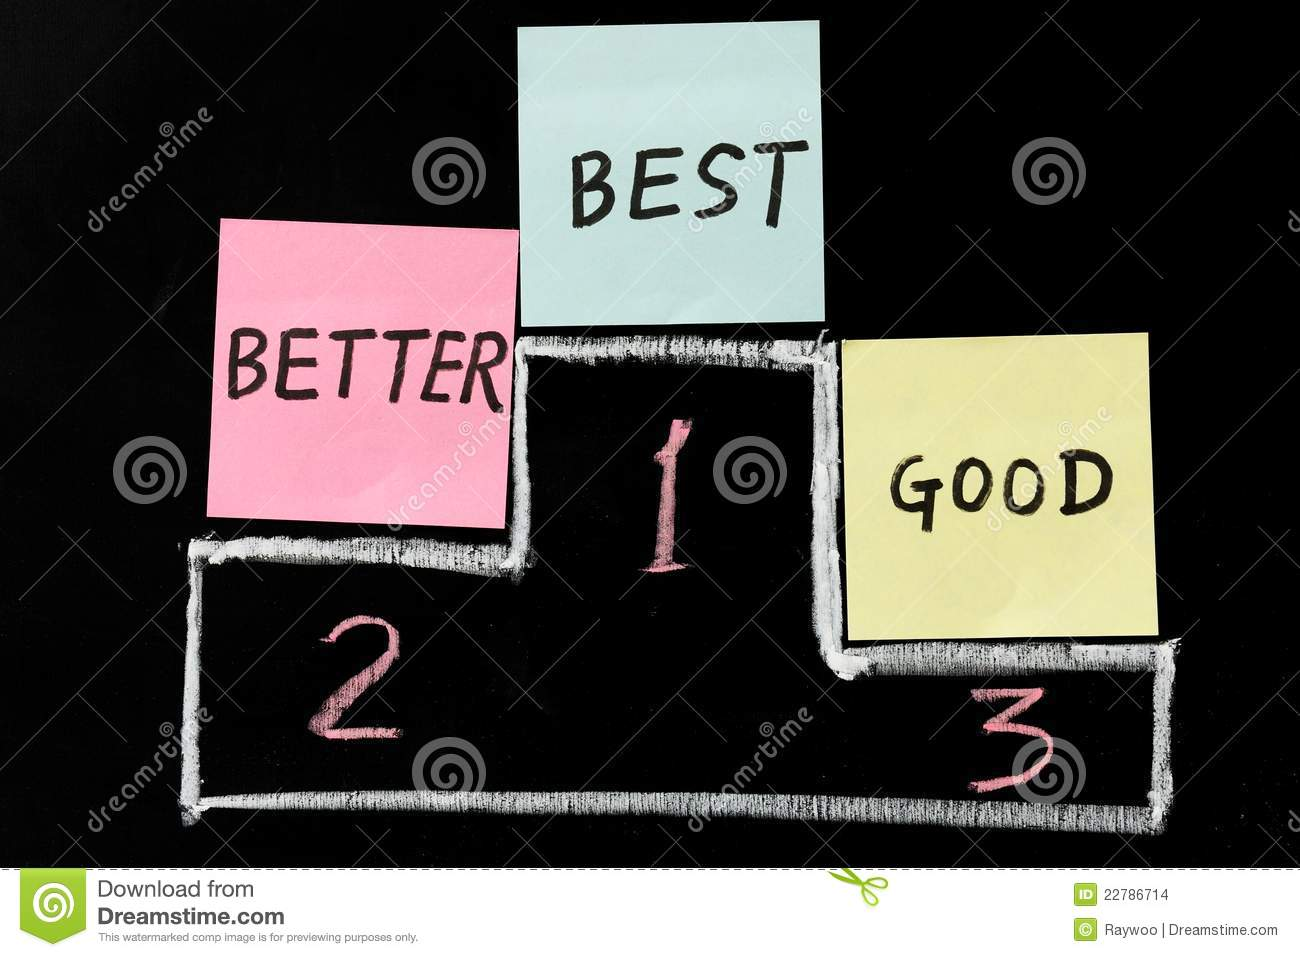 What is best: good, better, the best 90